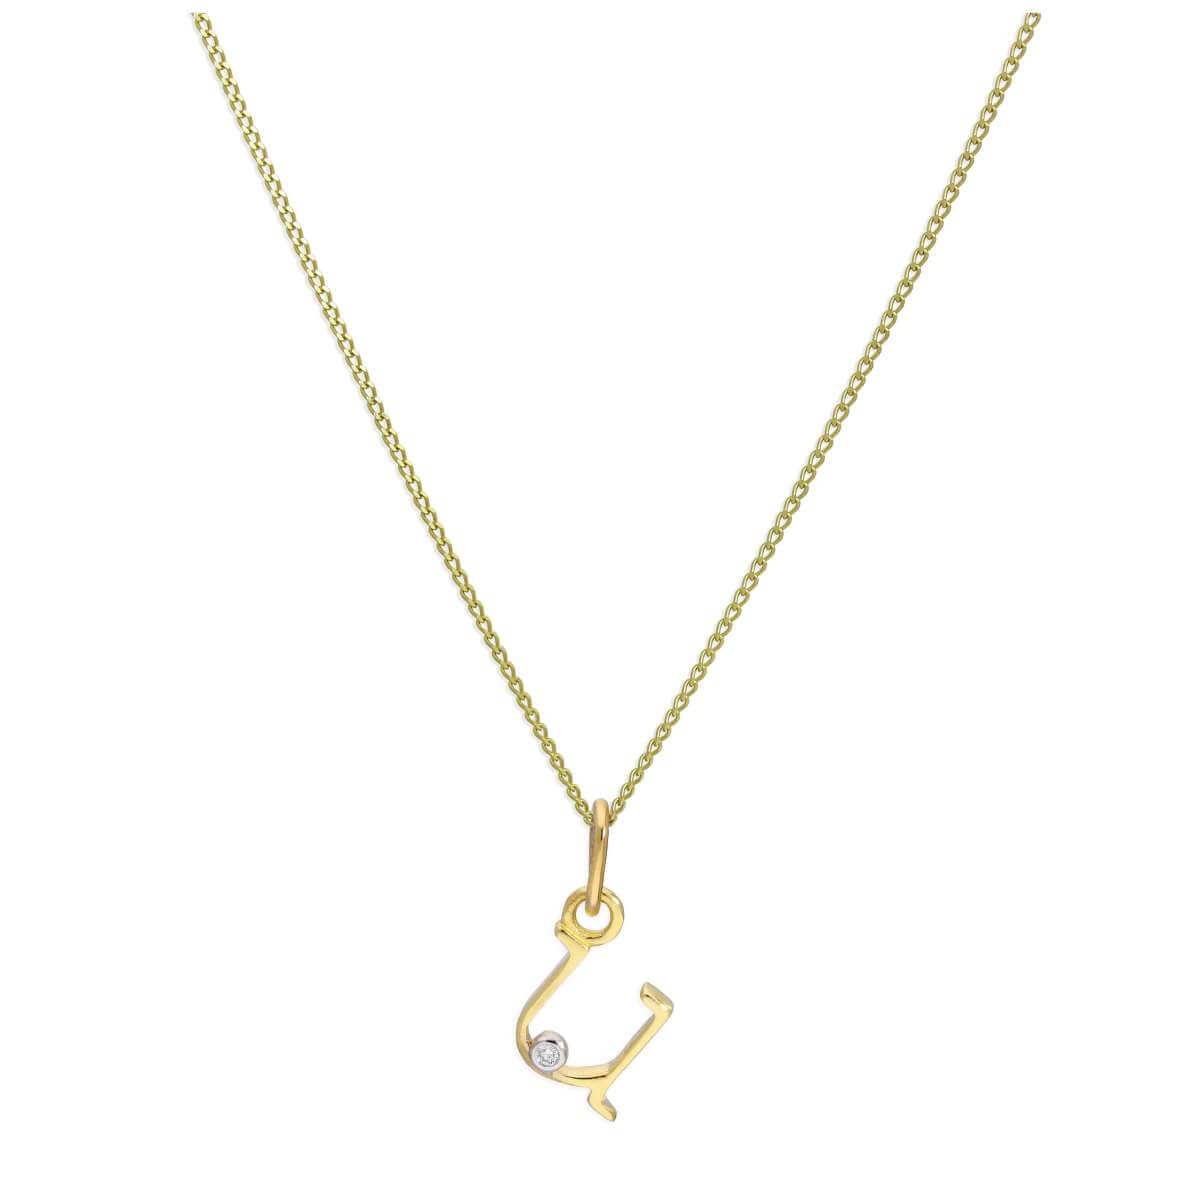 9ct Yellow Gold Single Stone Diamond 0.4 points Letter U Necklace Pendant 16 - 20 Inches